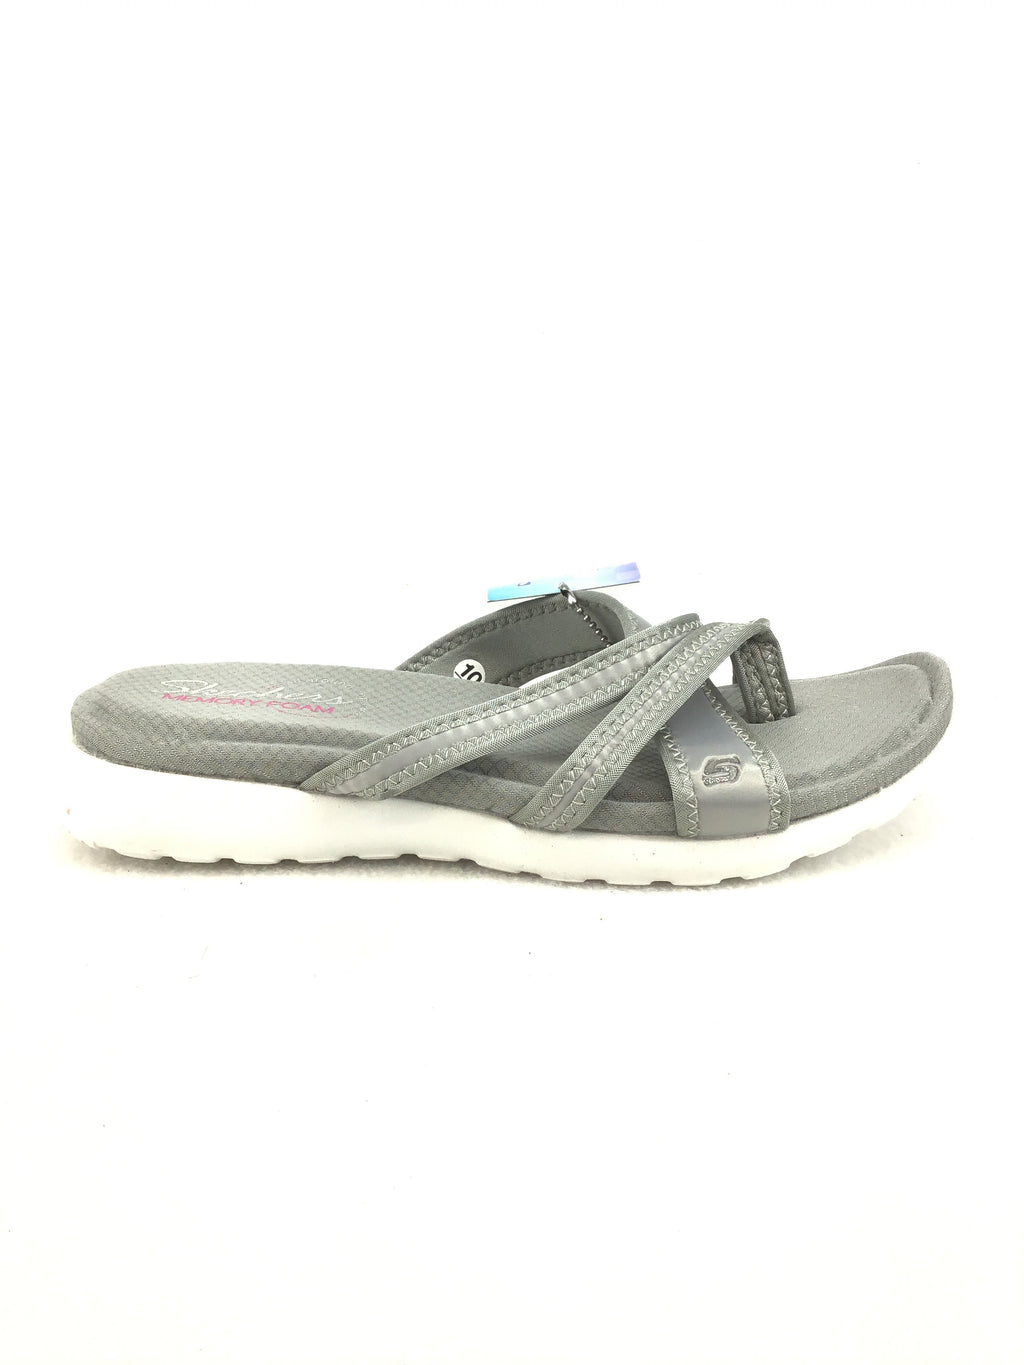 Skechers Memory Foam Sandals Size 10